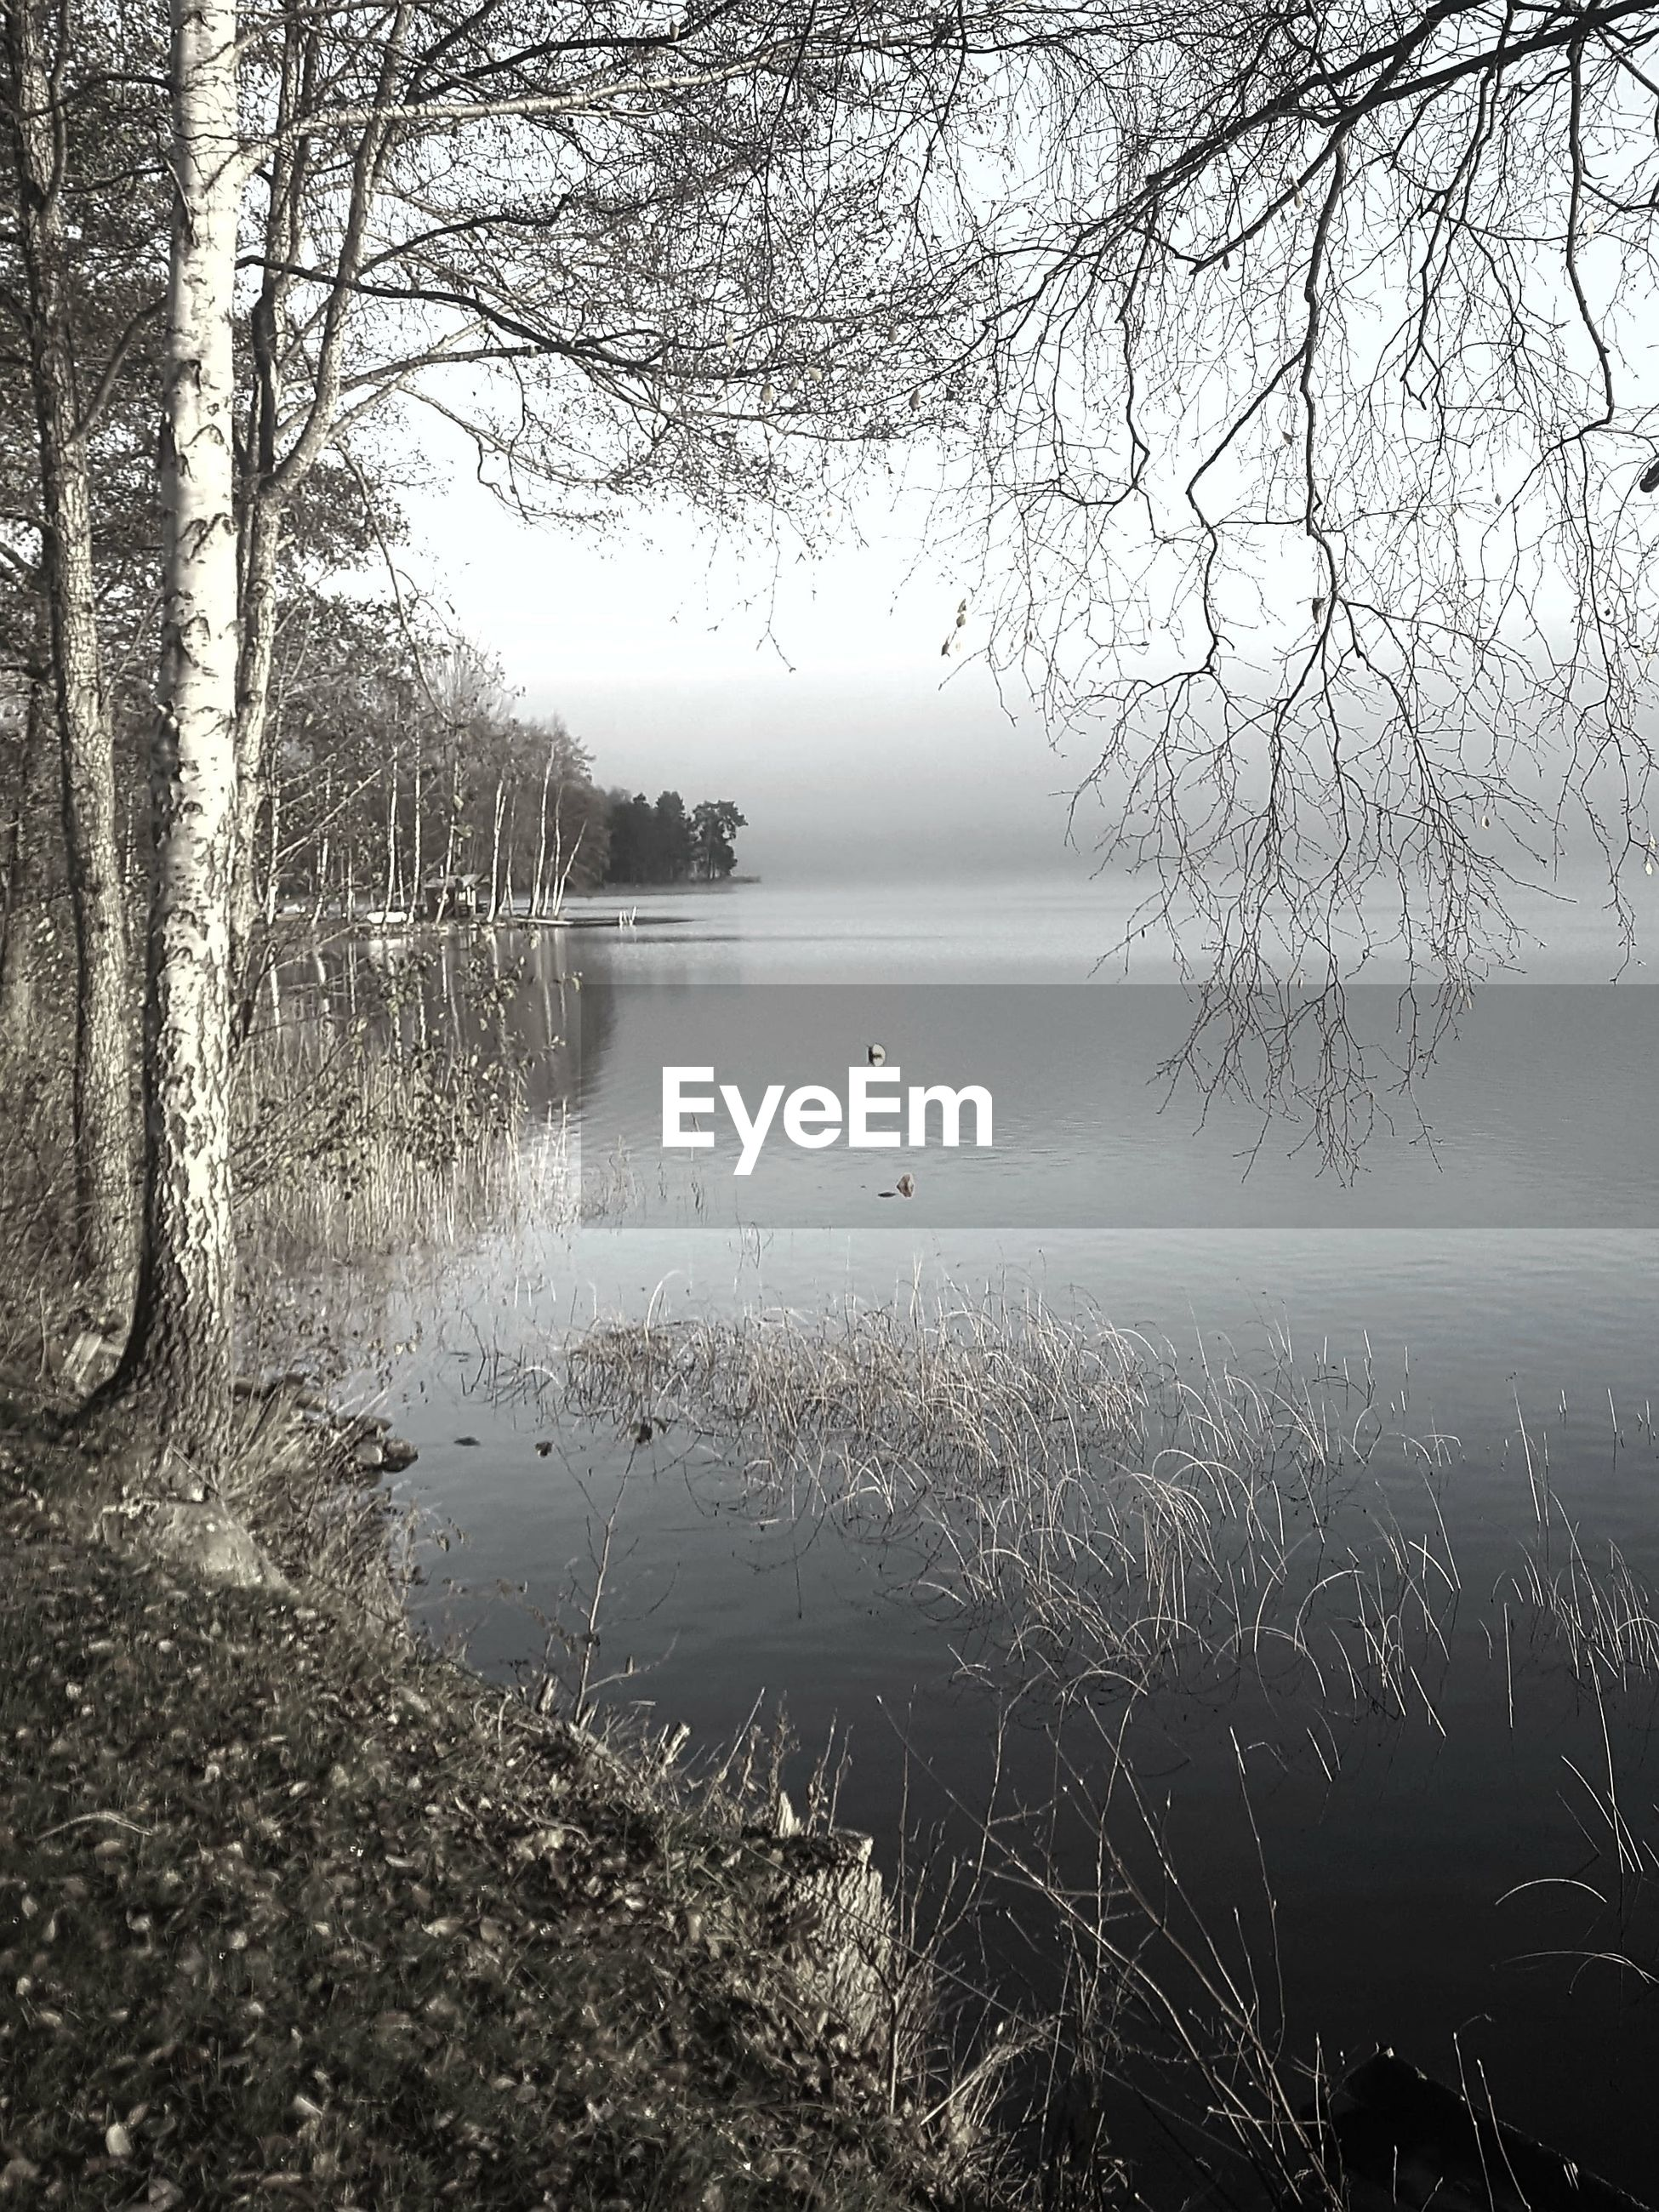 SCENIC VIEW OF LAKE AGAINST BARE TREES IN FOGGY WEATHER